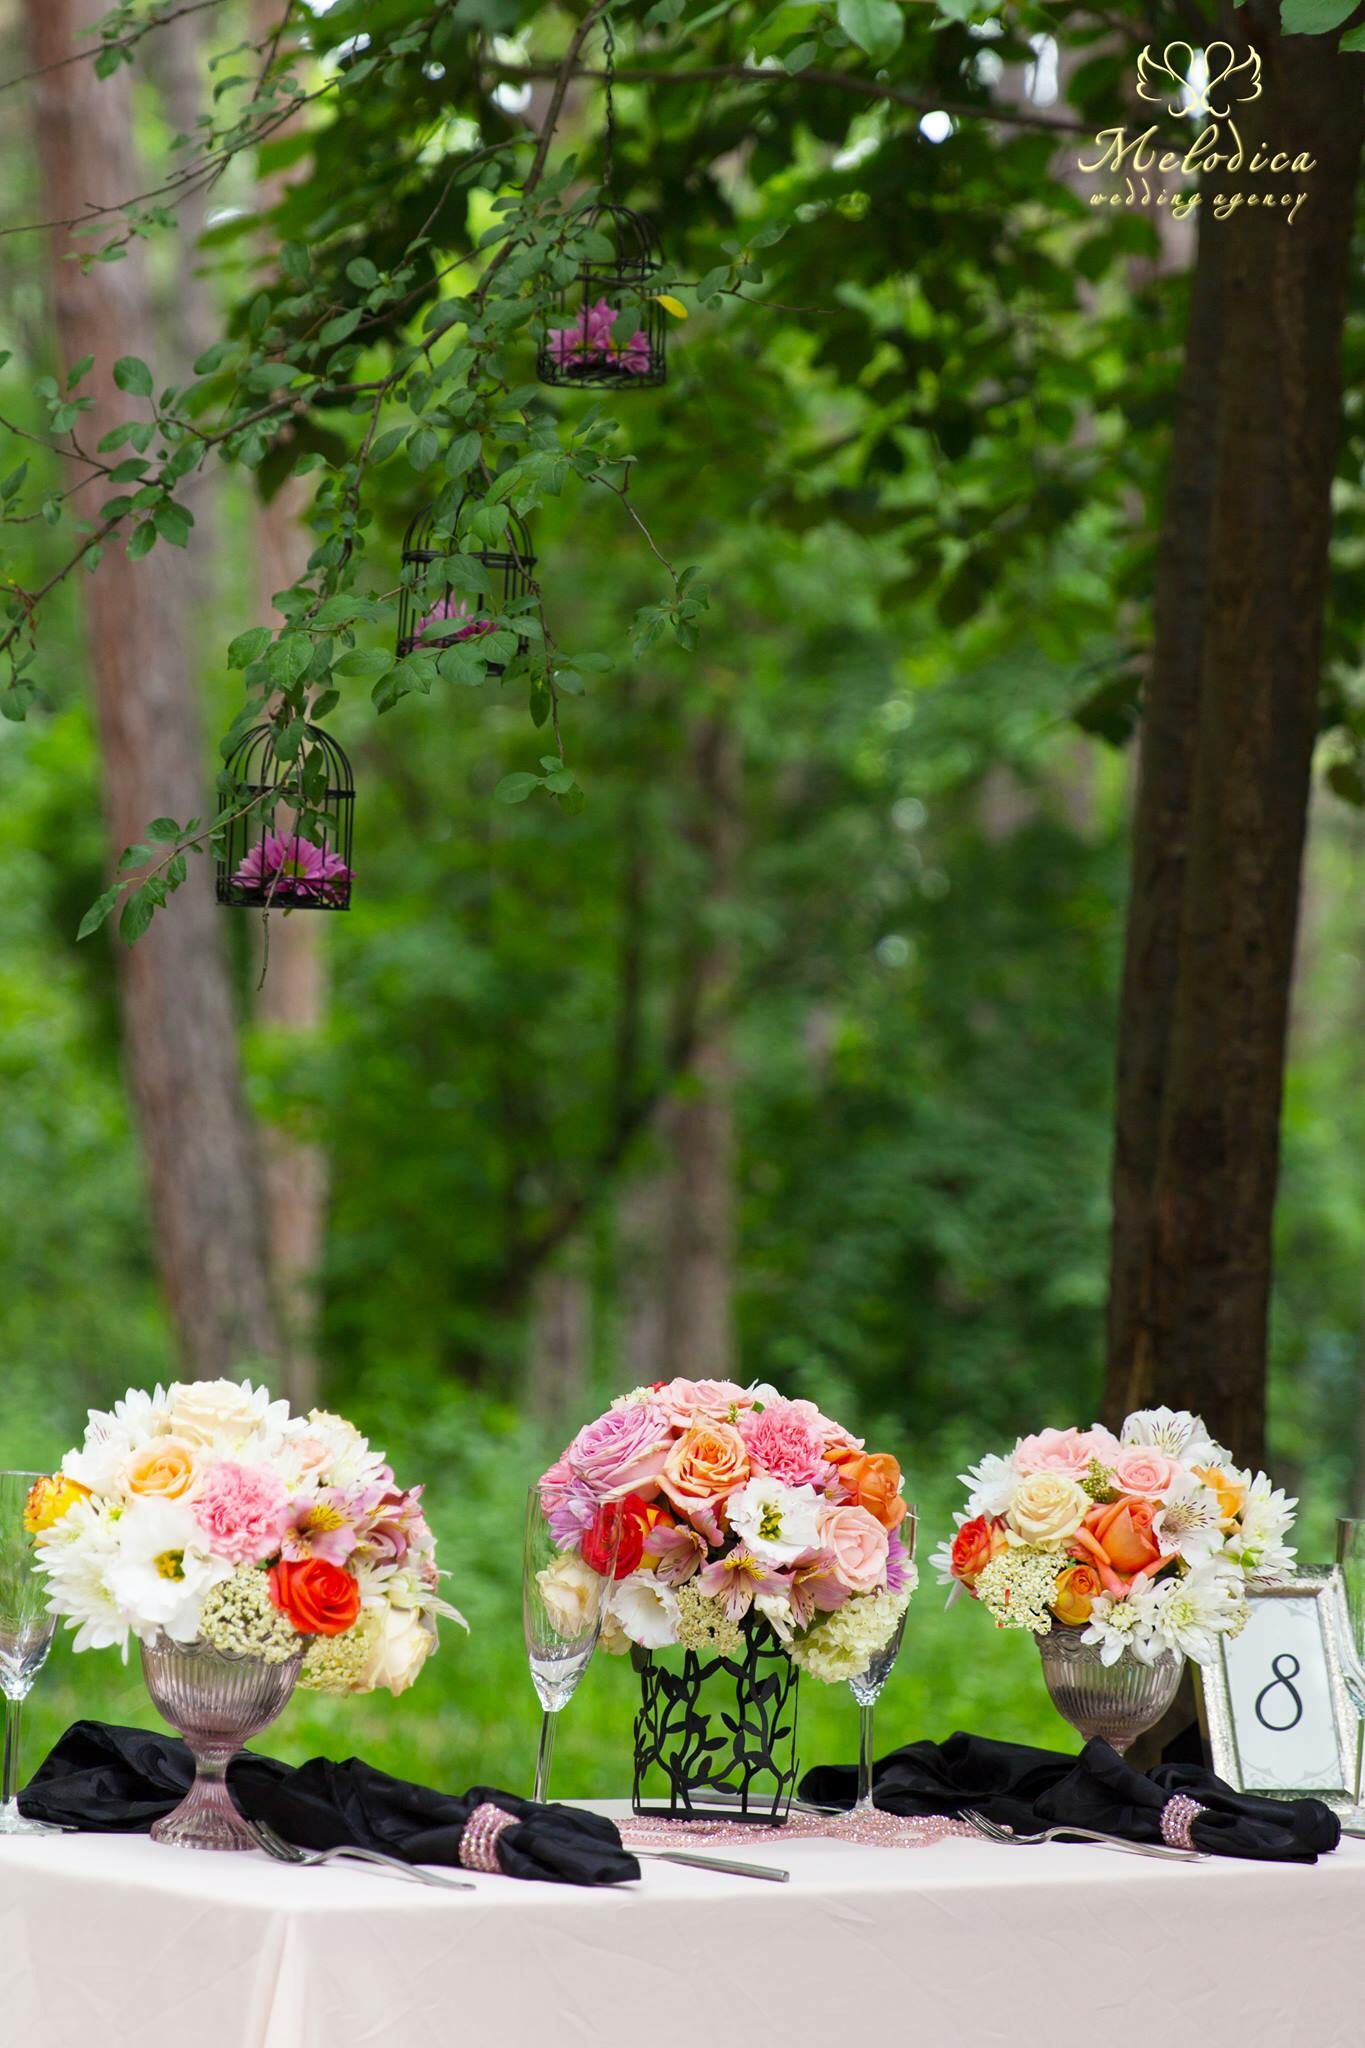 Outdoor in the woods wedding decoration by melodica wedding agency outdoor in the woods wedding decoration by melodica wedding agency junglespirit Image collections